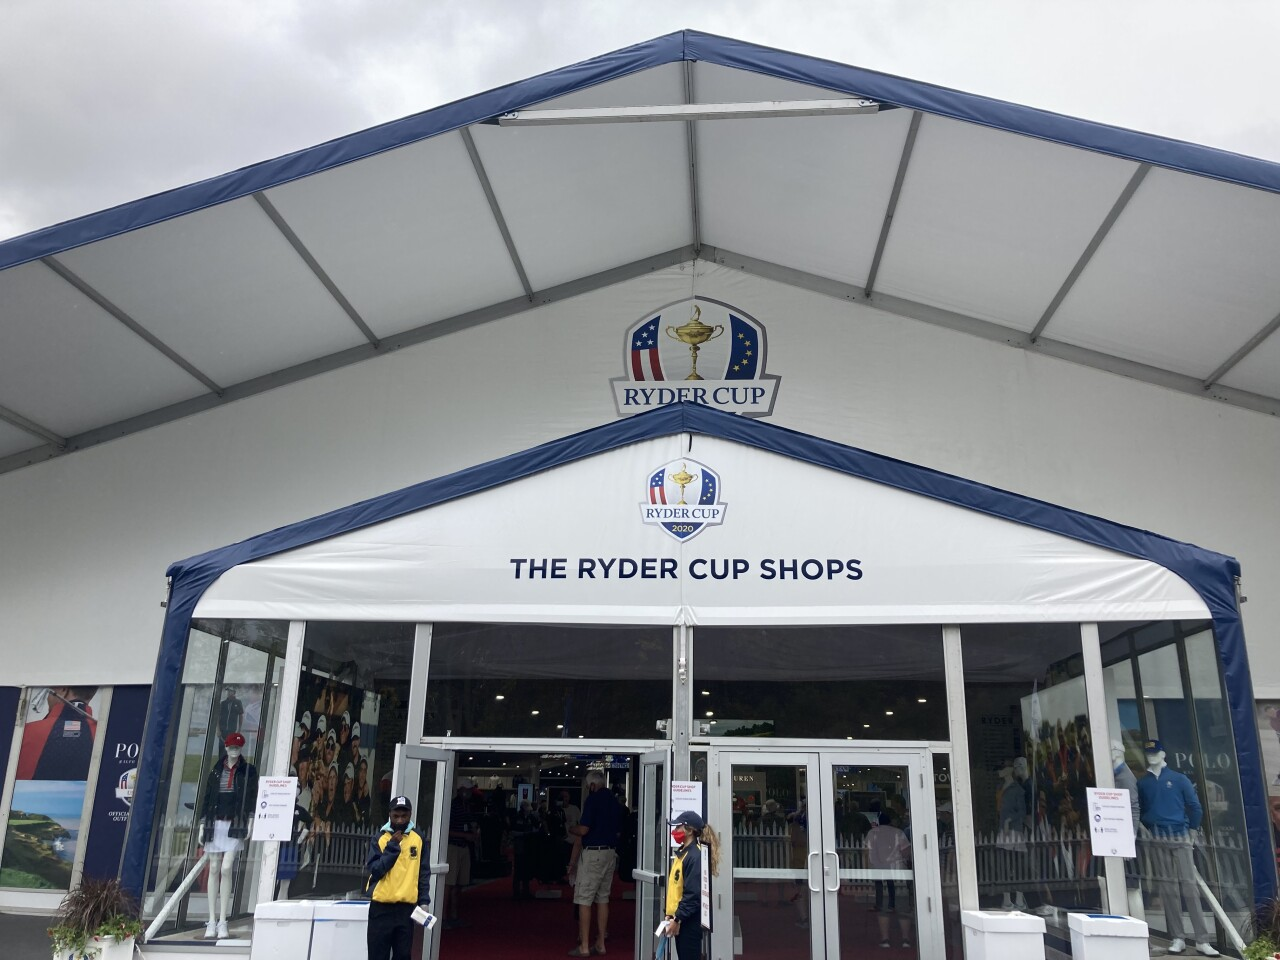 Fan excitement ahead of the 43rd Ryder Cup